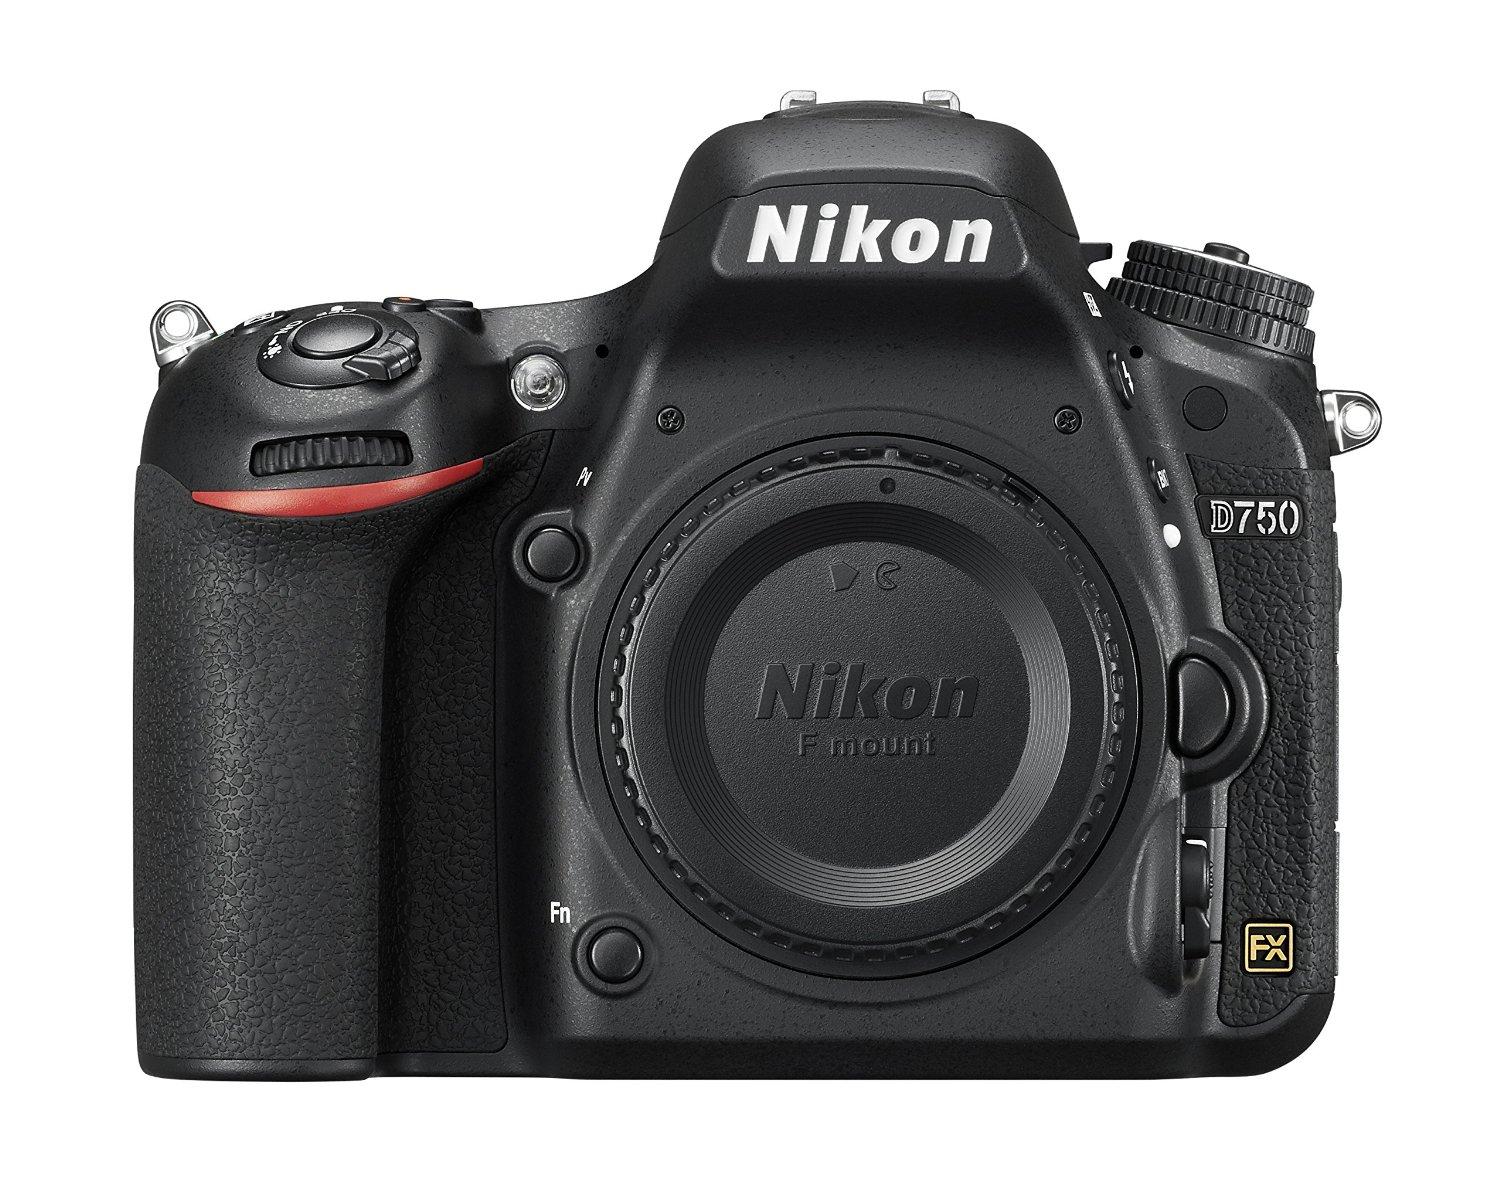 Click HERE to buy the Nikon D750 from Amazon.com